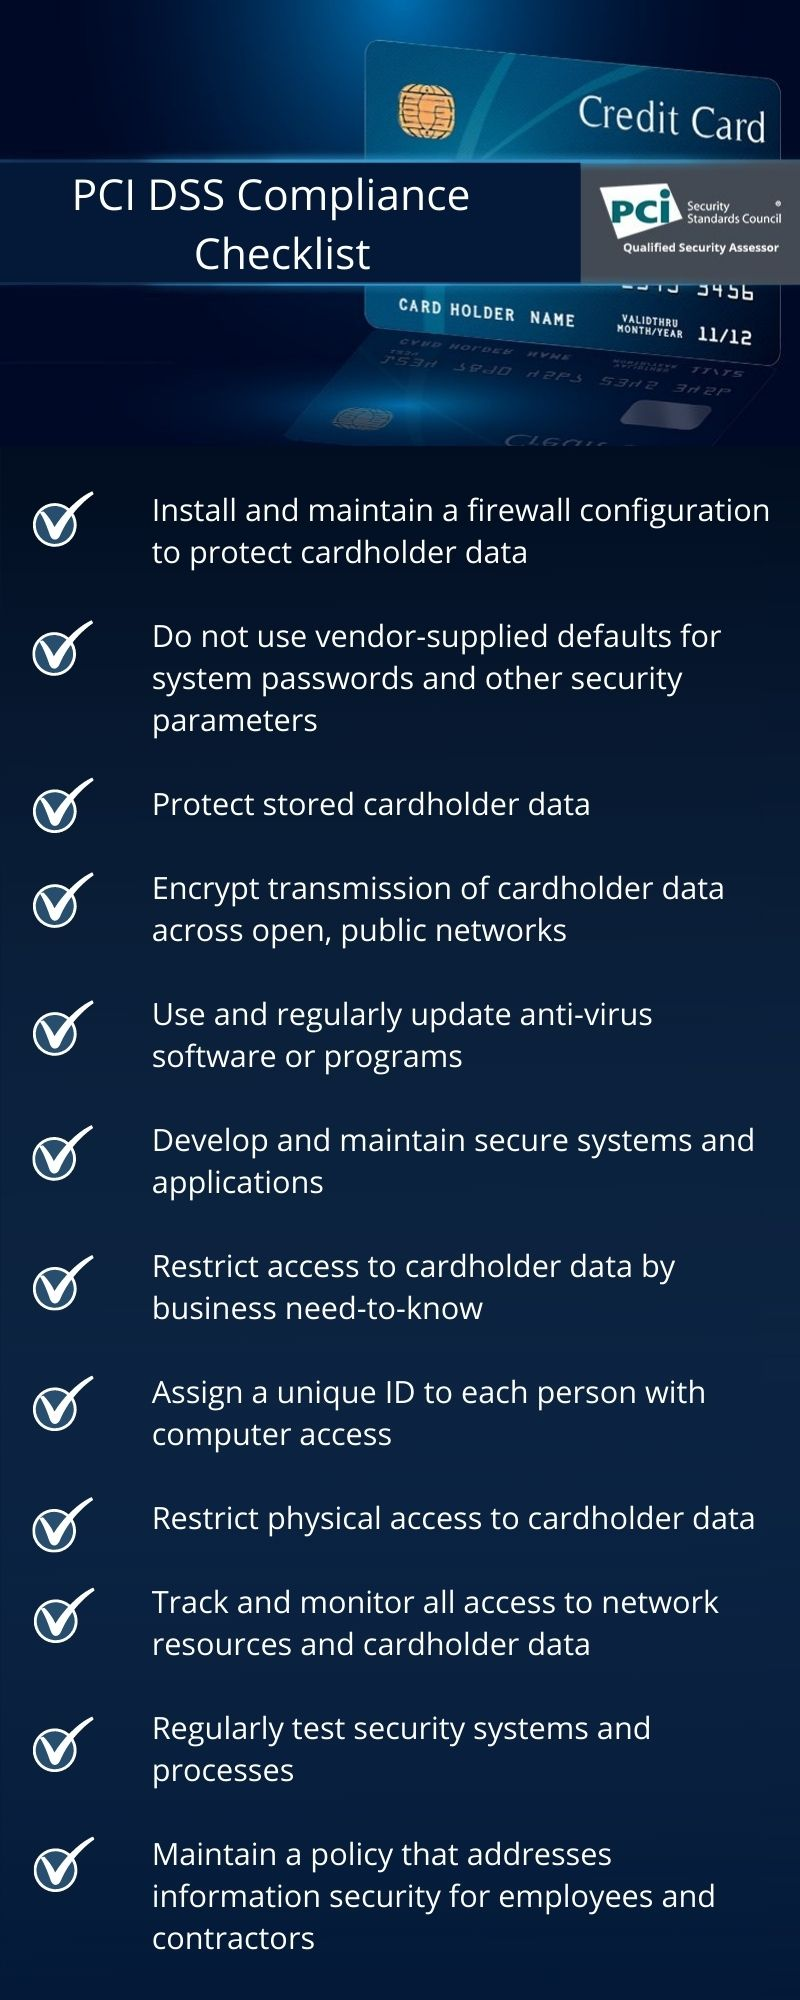 PCI DSS Compliance Checklist for Businesses